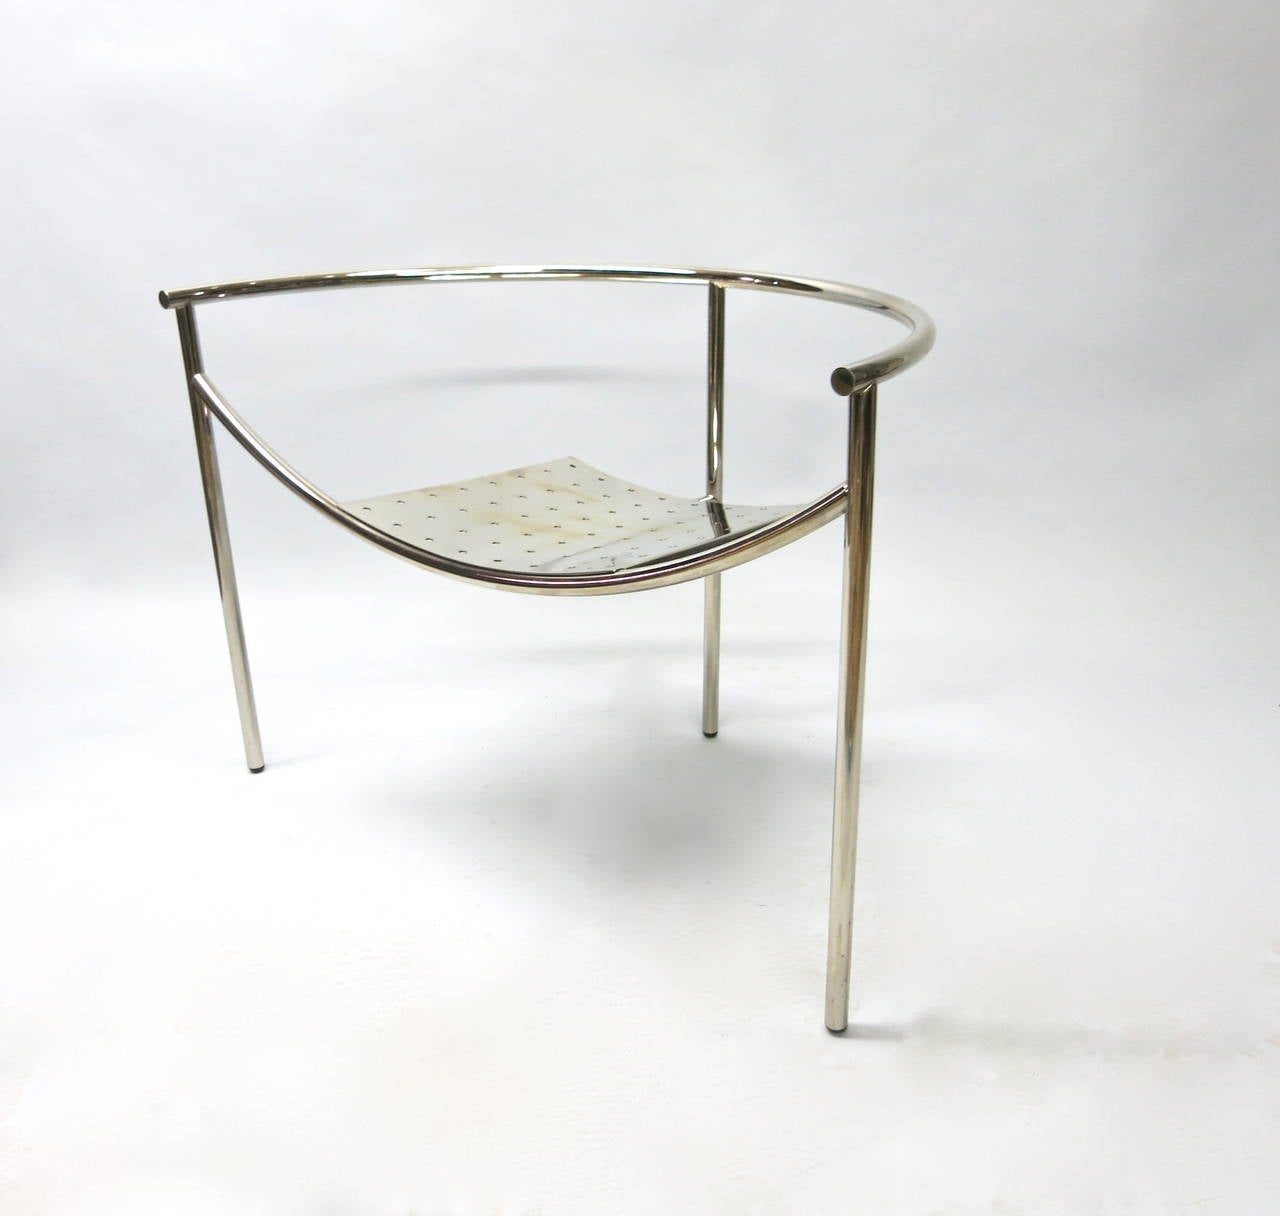 100 philippe starck dining table louis ghost chair for Philippe starck dining tables